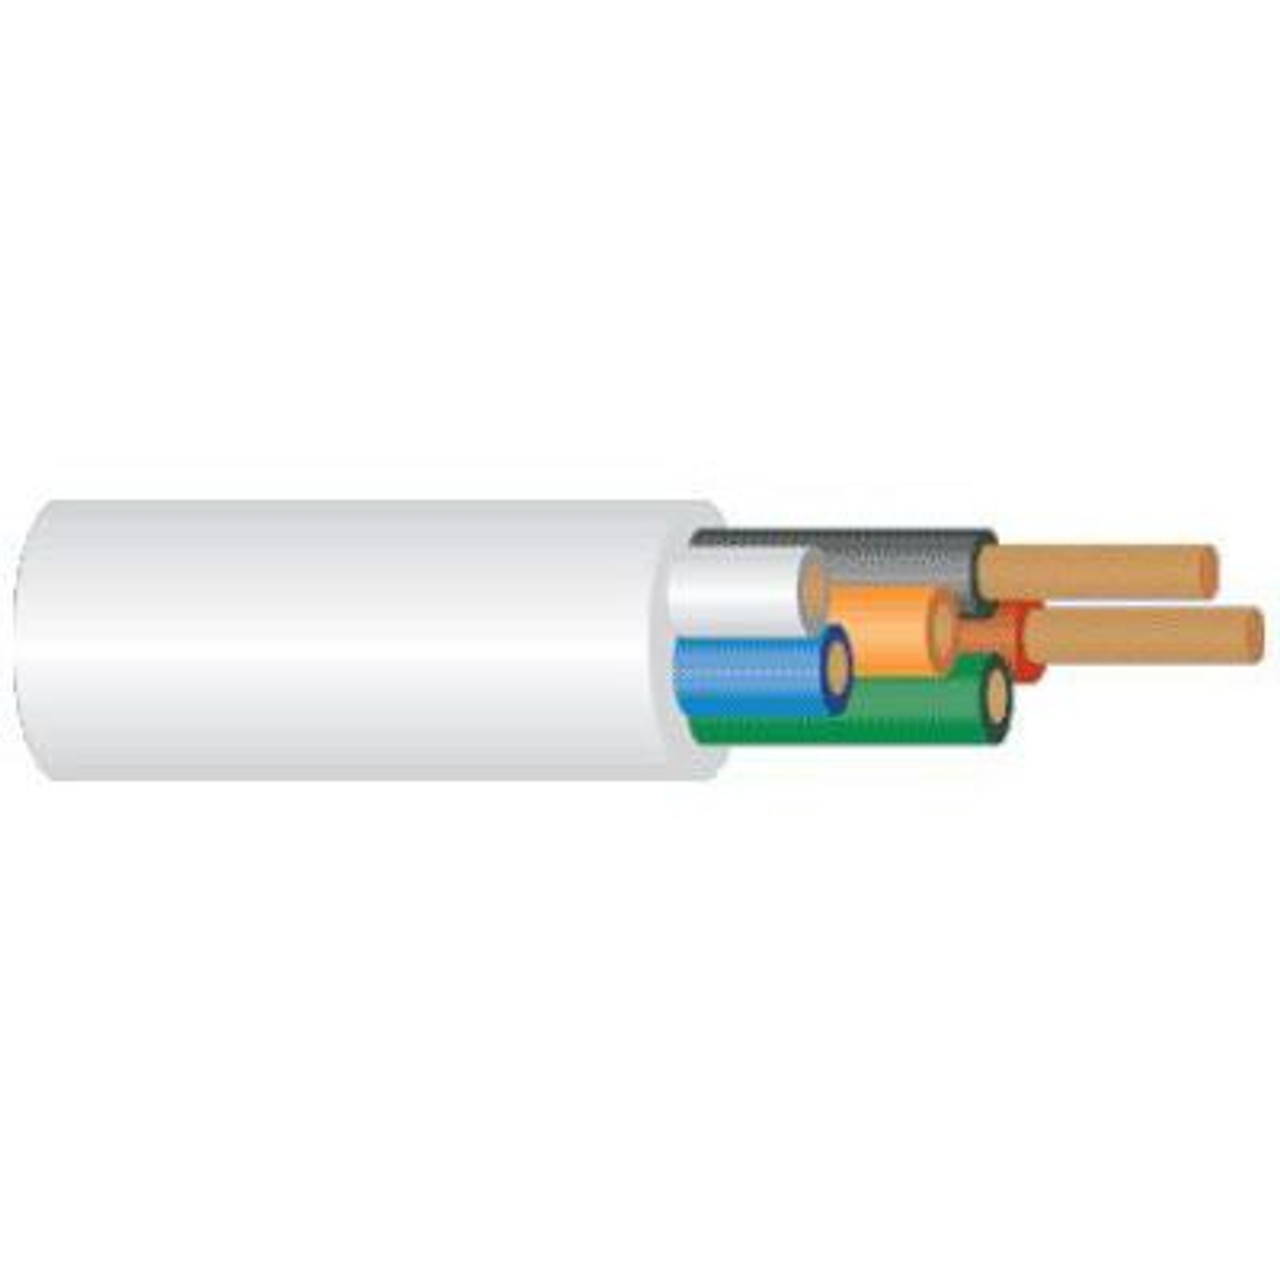 4Cabling 6 Core Security Cable 14/0.20mm - 300m - Grey